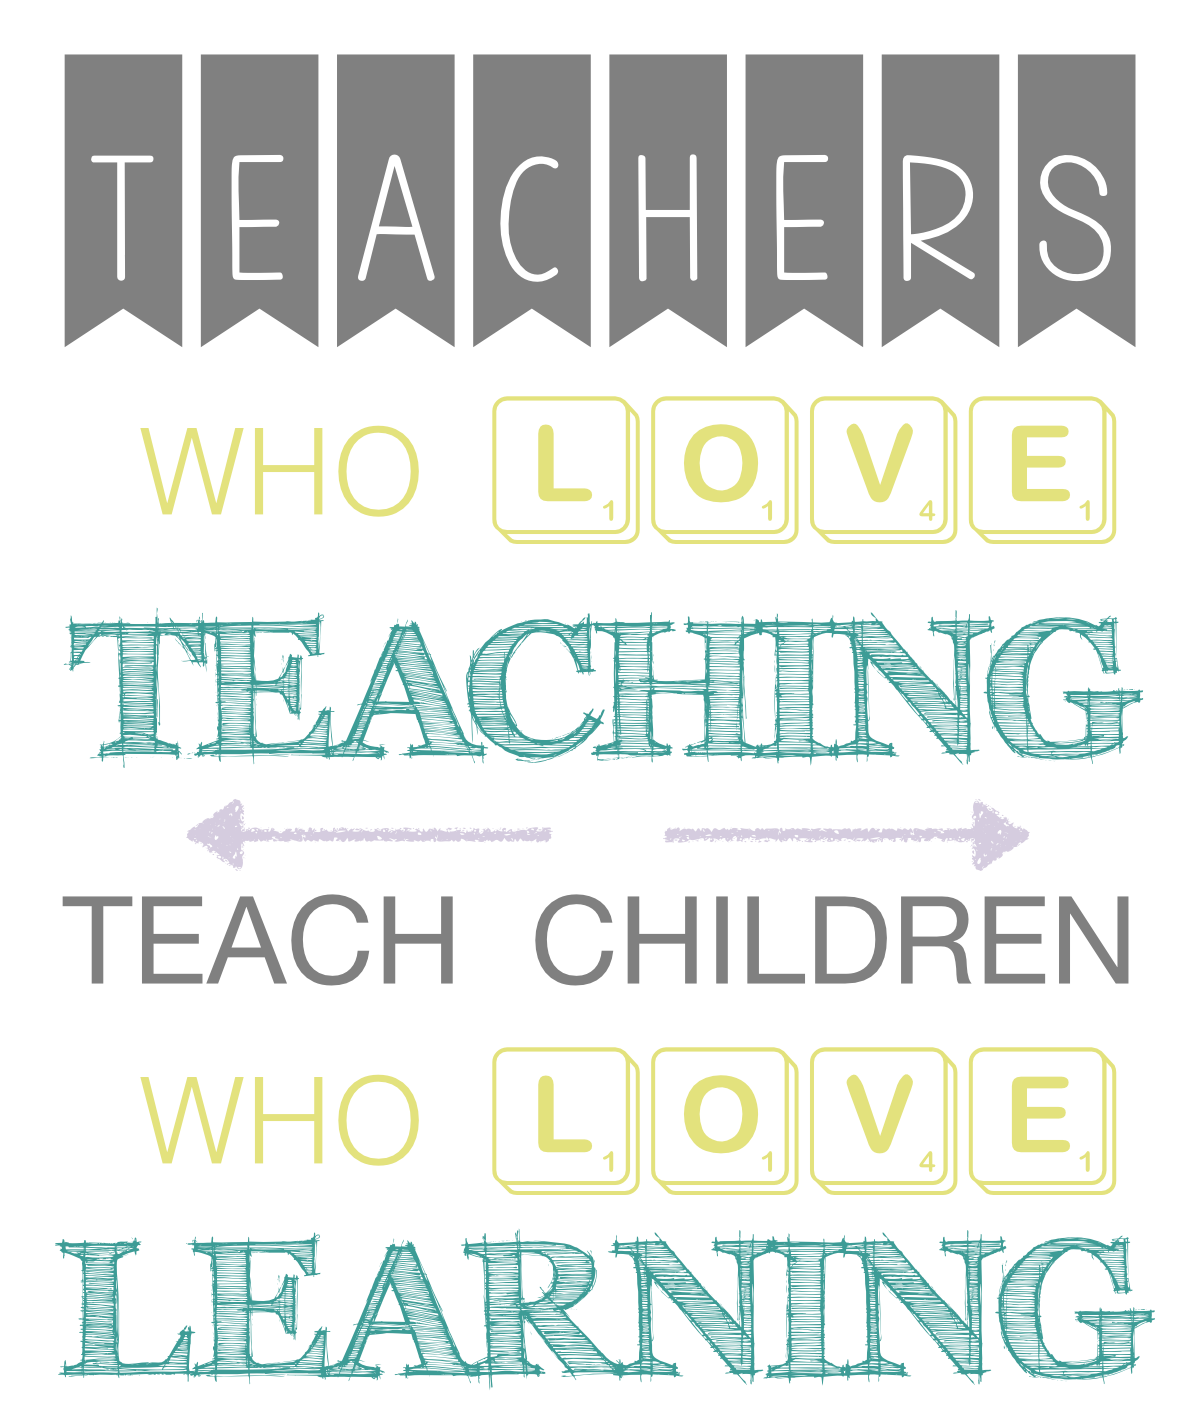 Educational Quotes For Teachers Entrancing Inspiring Teacher Quotes